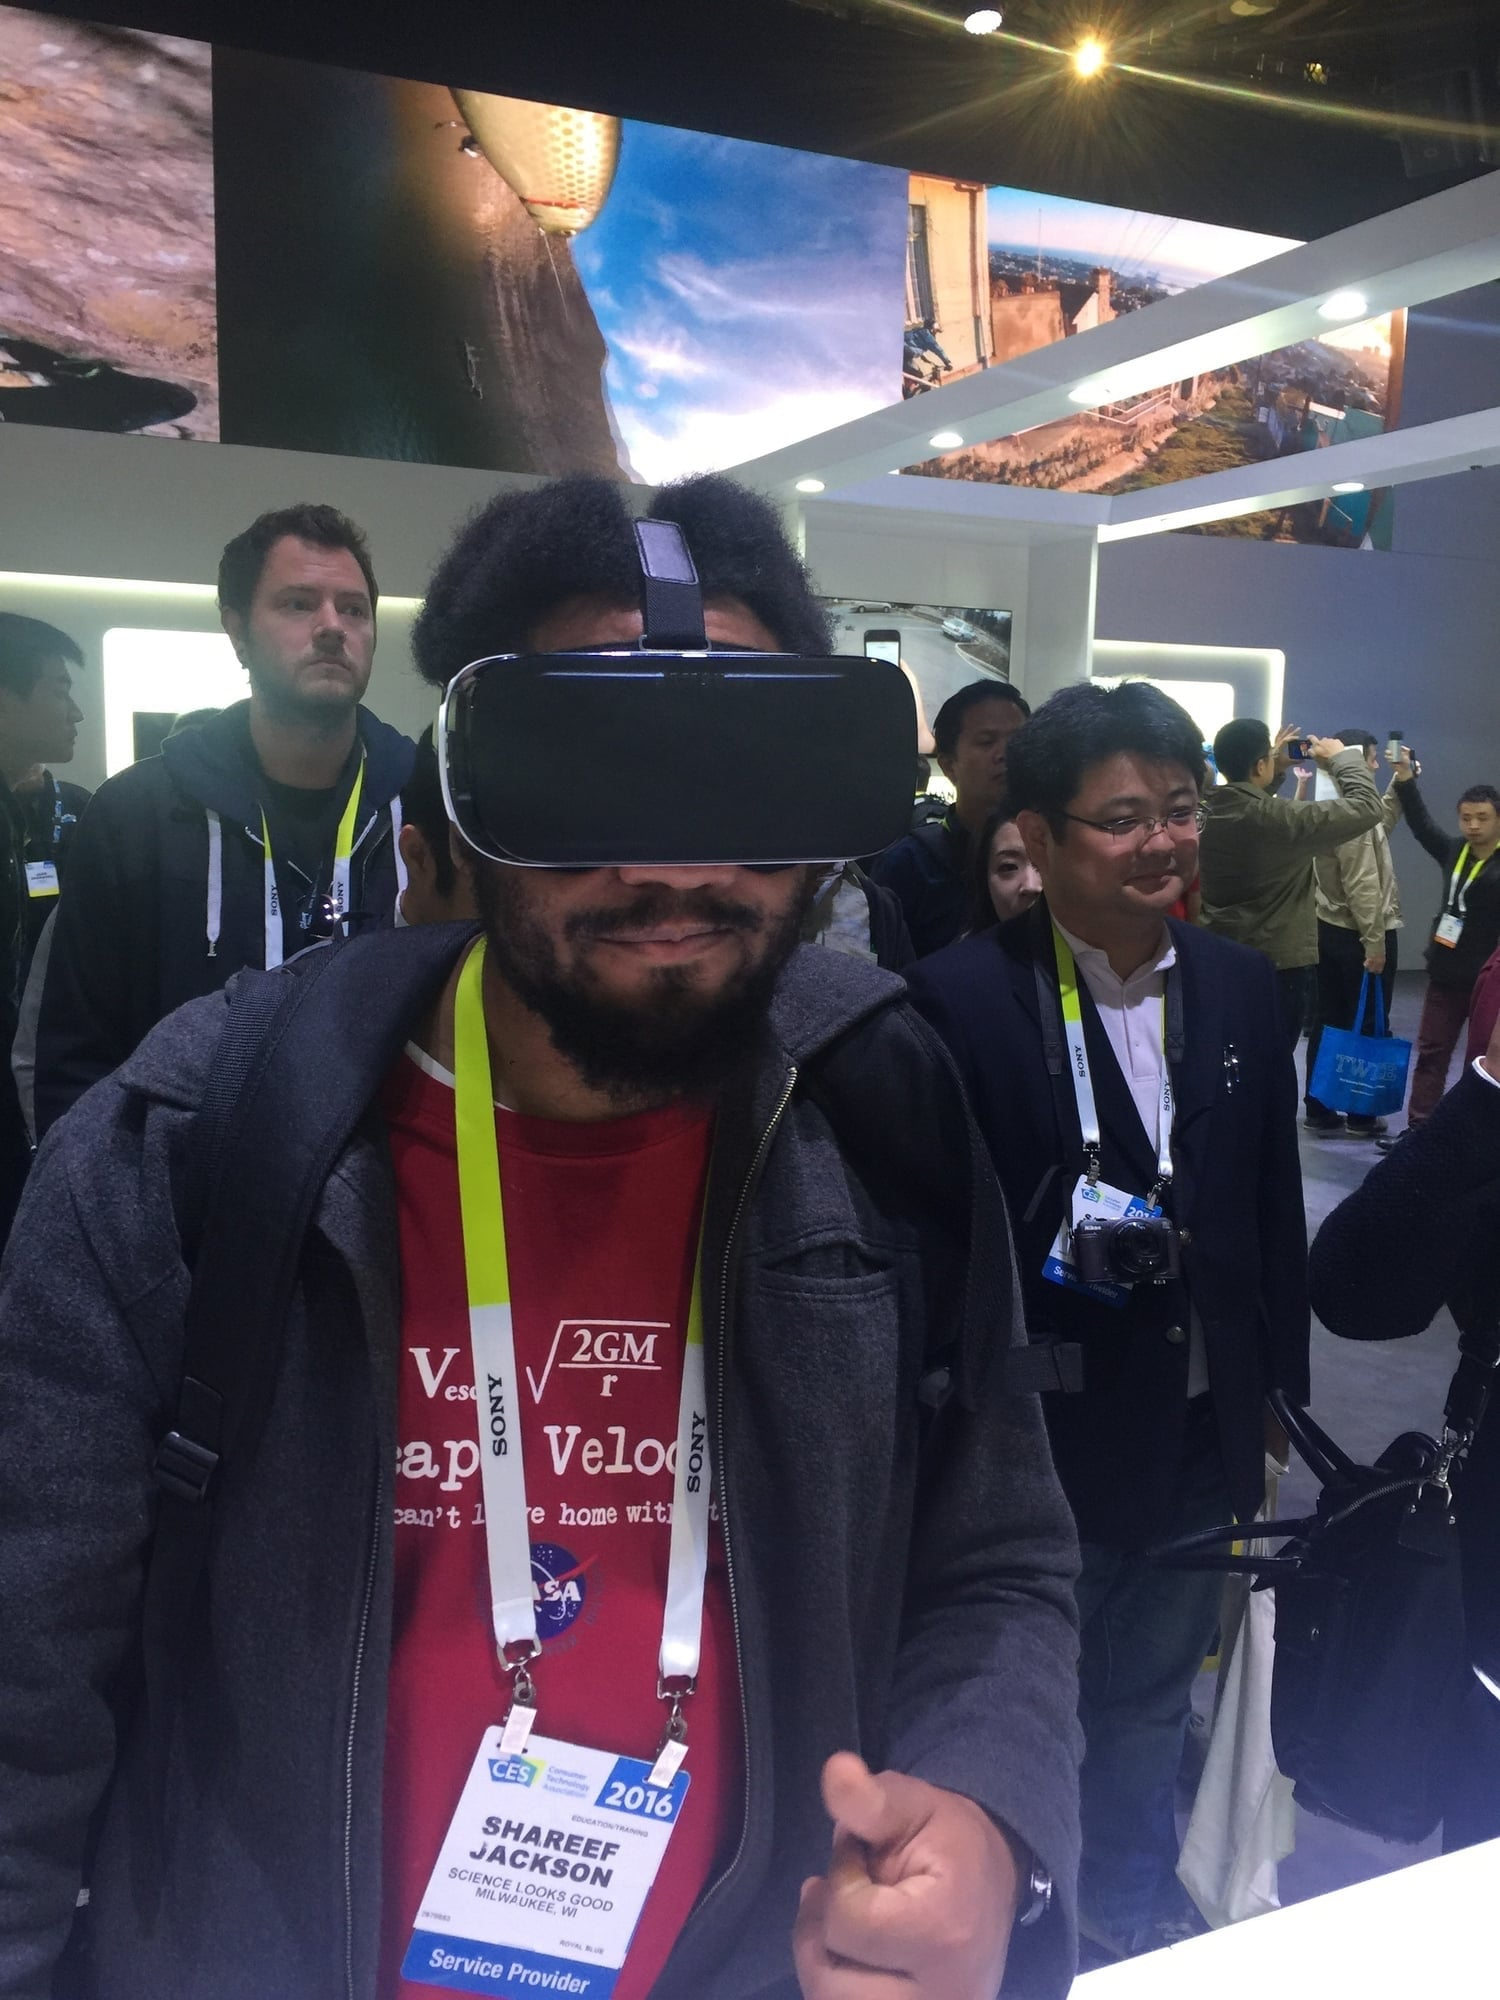 The Samsung Gear VR let's me surf ... Which is something I'd never do otherwise